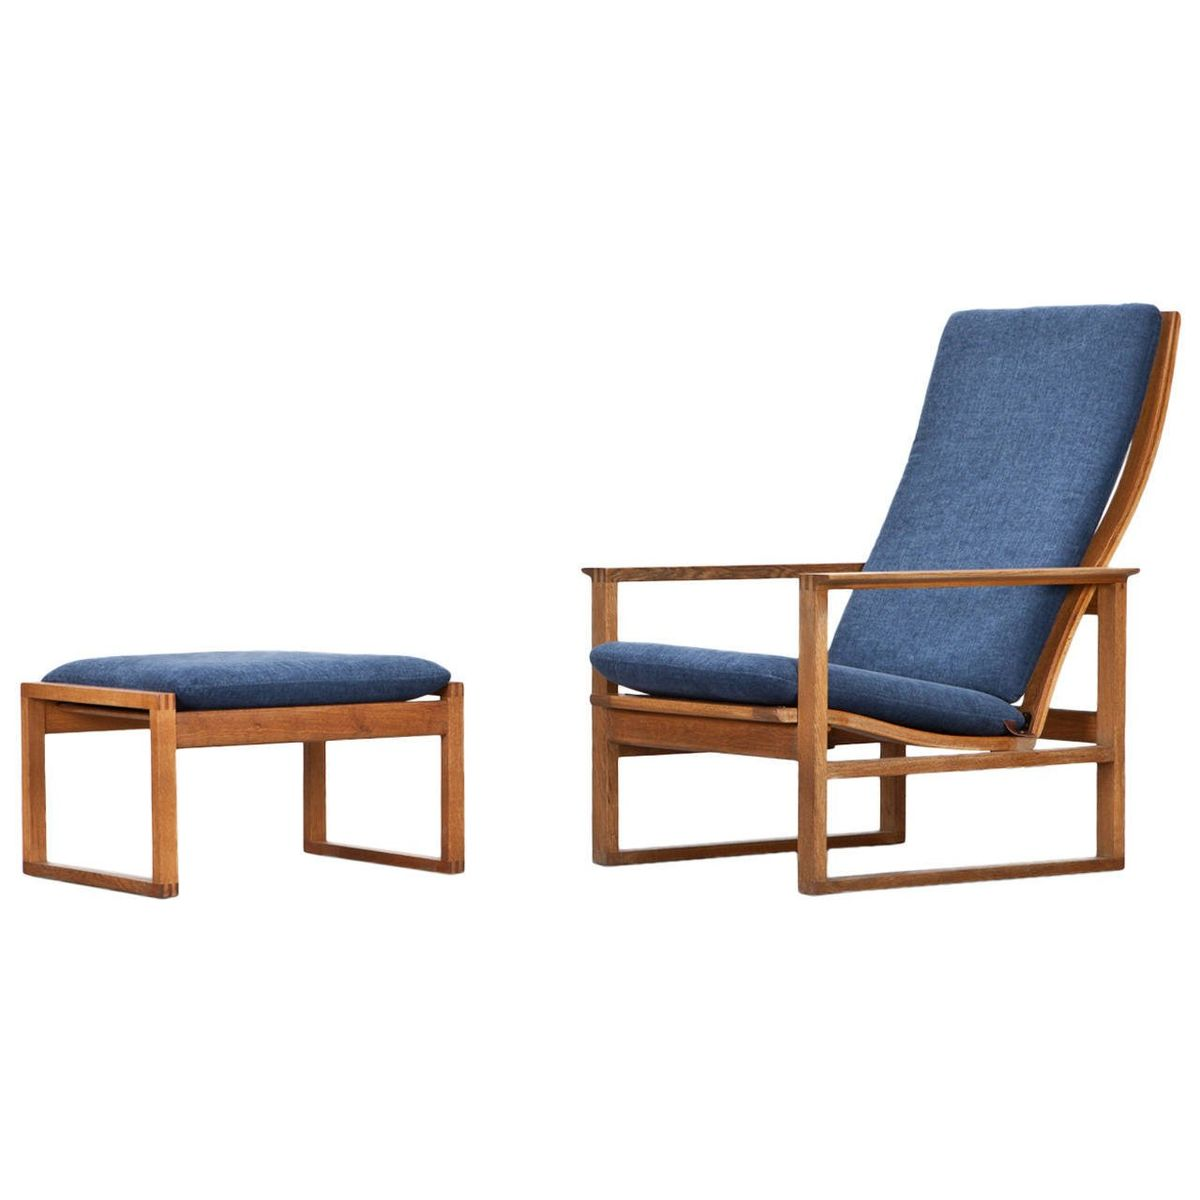 lounge chair with ottoman by børge mogensen for fredericia 1950s